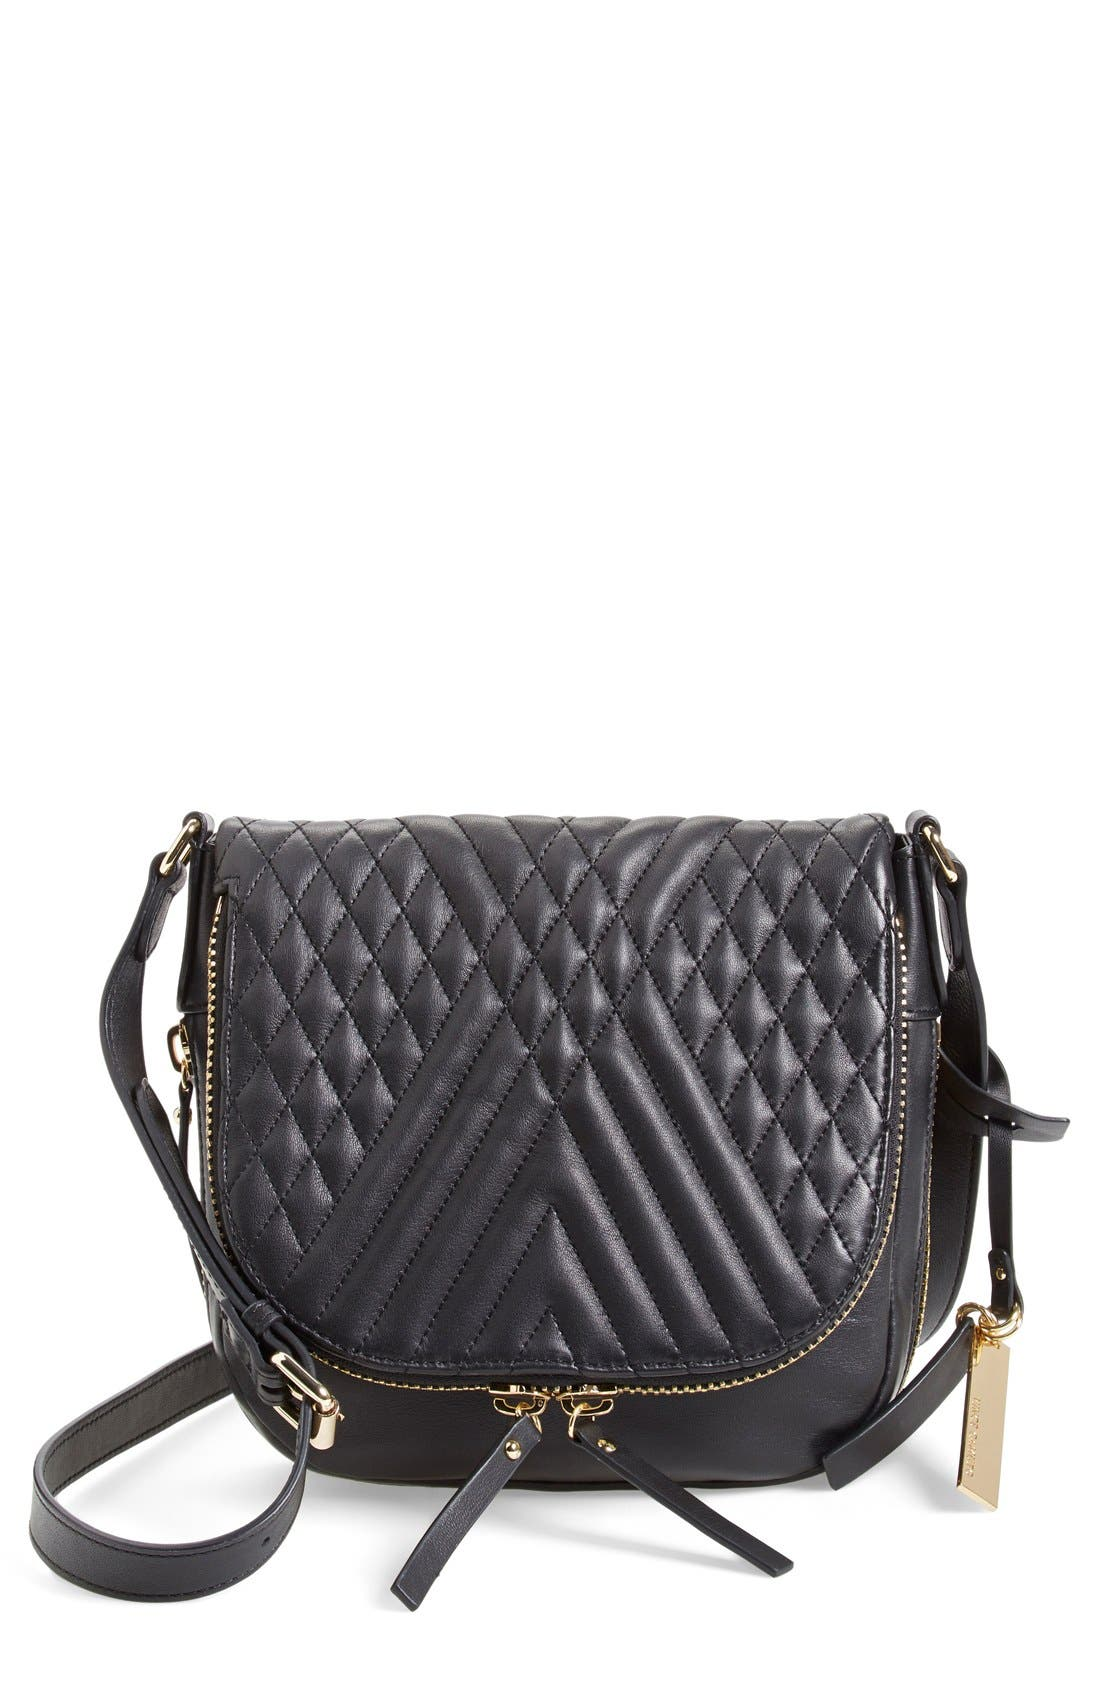 Alternate Image 1 Selected - Vince Camuto 'Baily' Crossbody Bag